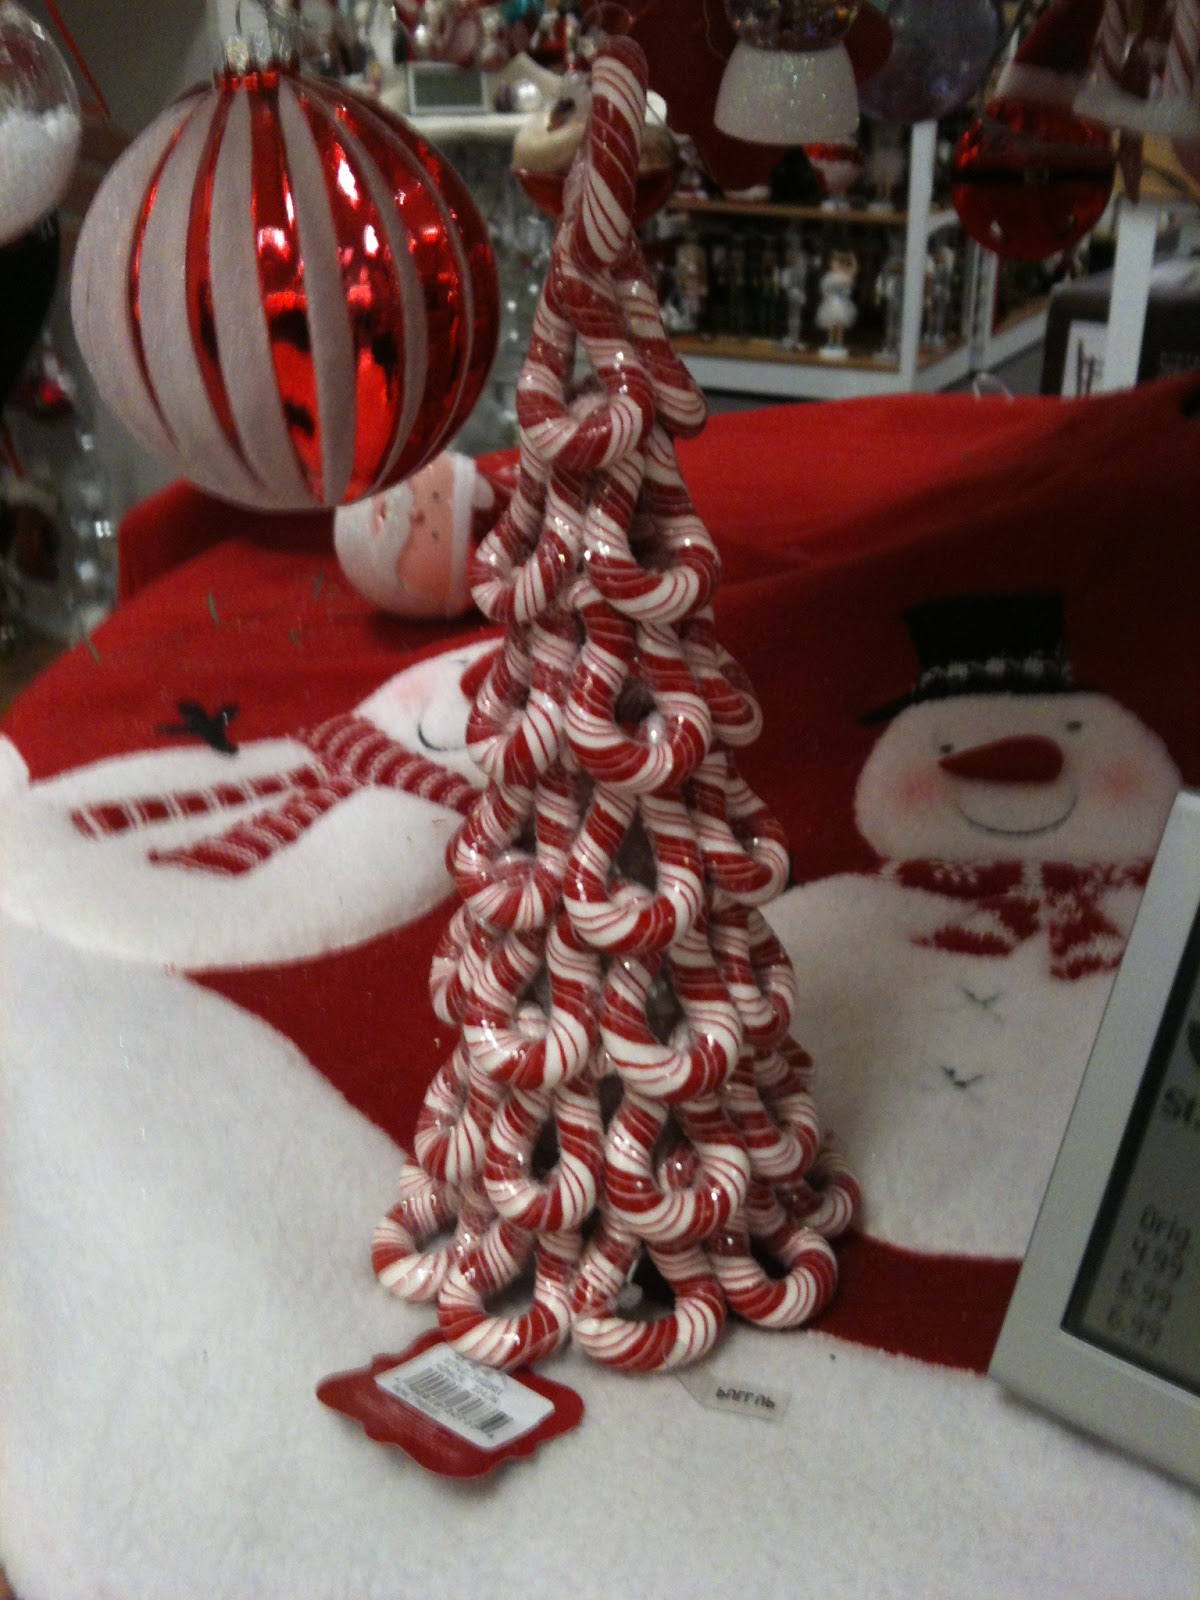 Large candy cane ornaments - My Daughter Found This Ornament We Both Loved The Cluster Of Candy Canes Turned Into A Christmas Tree Another Easy Idea To Make For Your Own